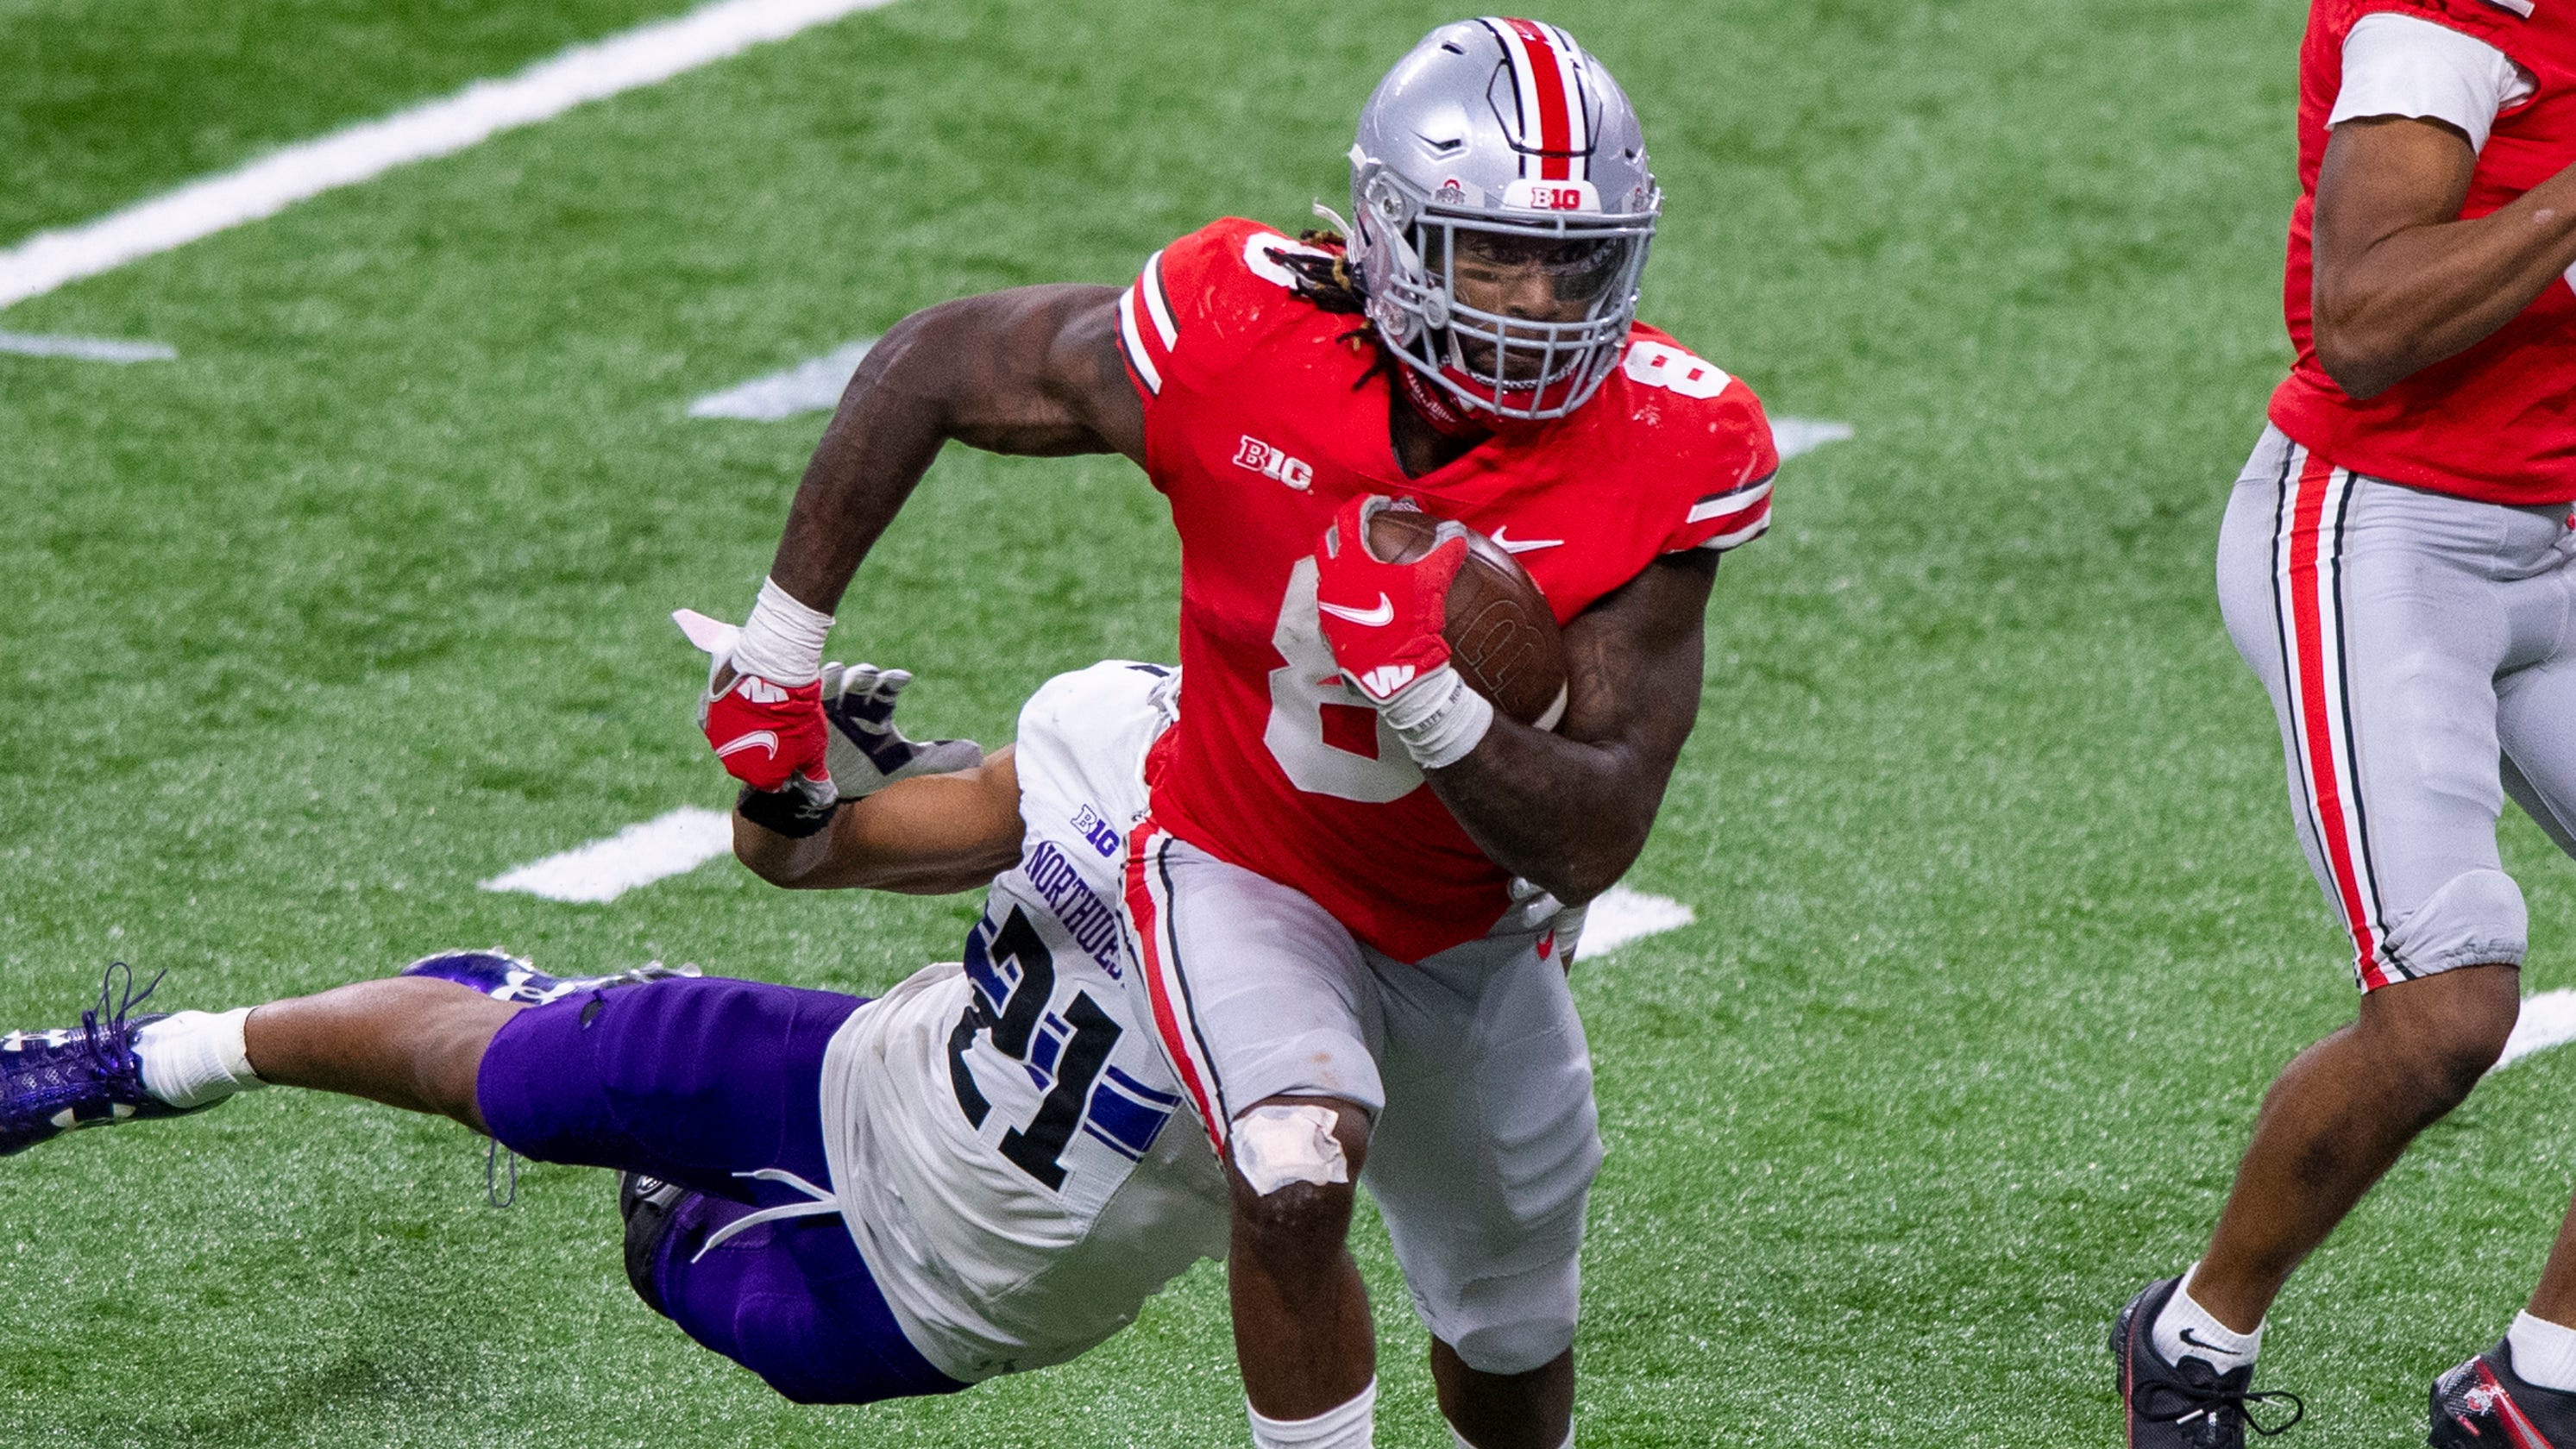 College football Week 16 winners and losers: Ohio State survives, Oklahoma wins Big 12 again